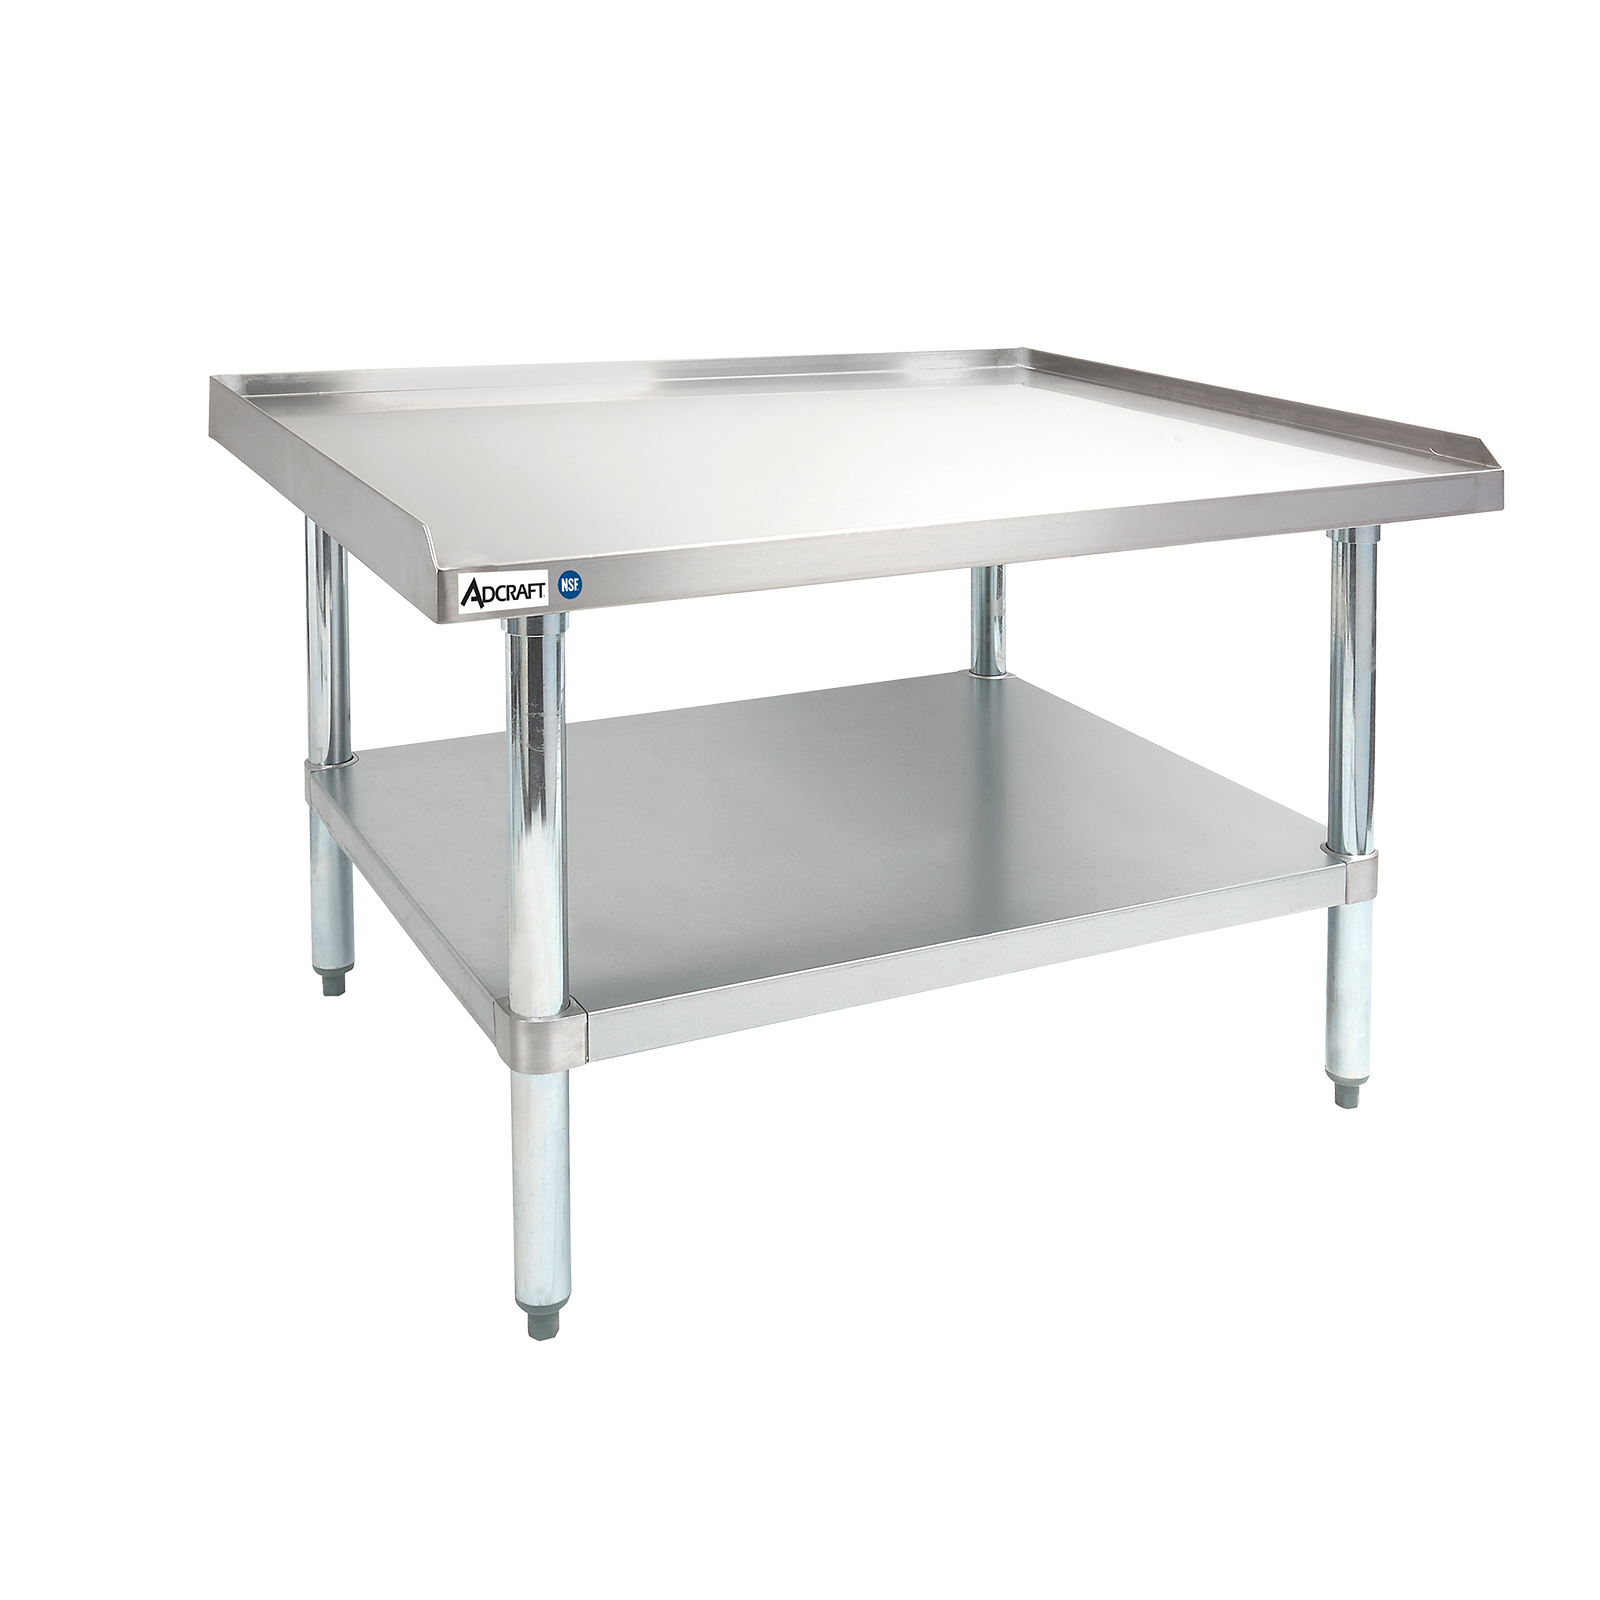 Admiral Craft ES-3048 equipment stand, for countertop cooking